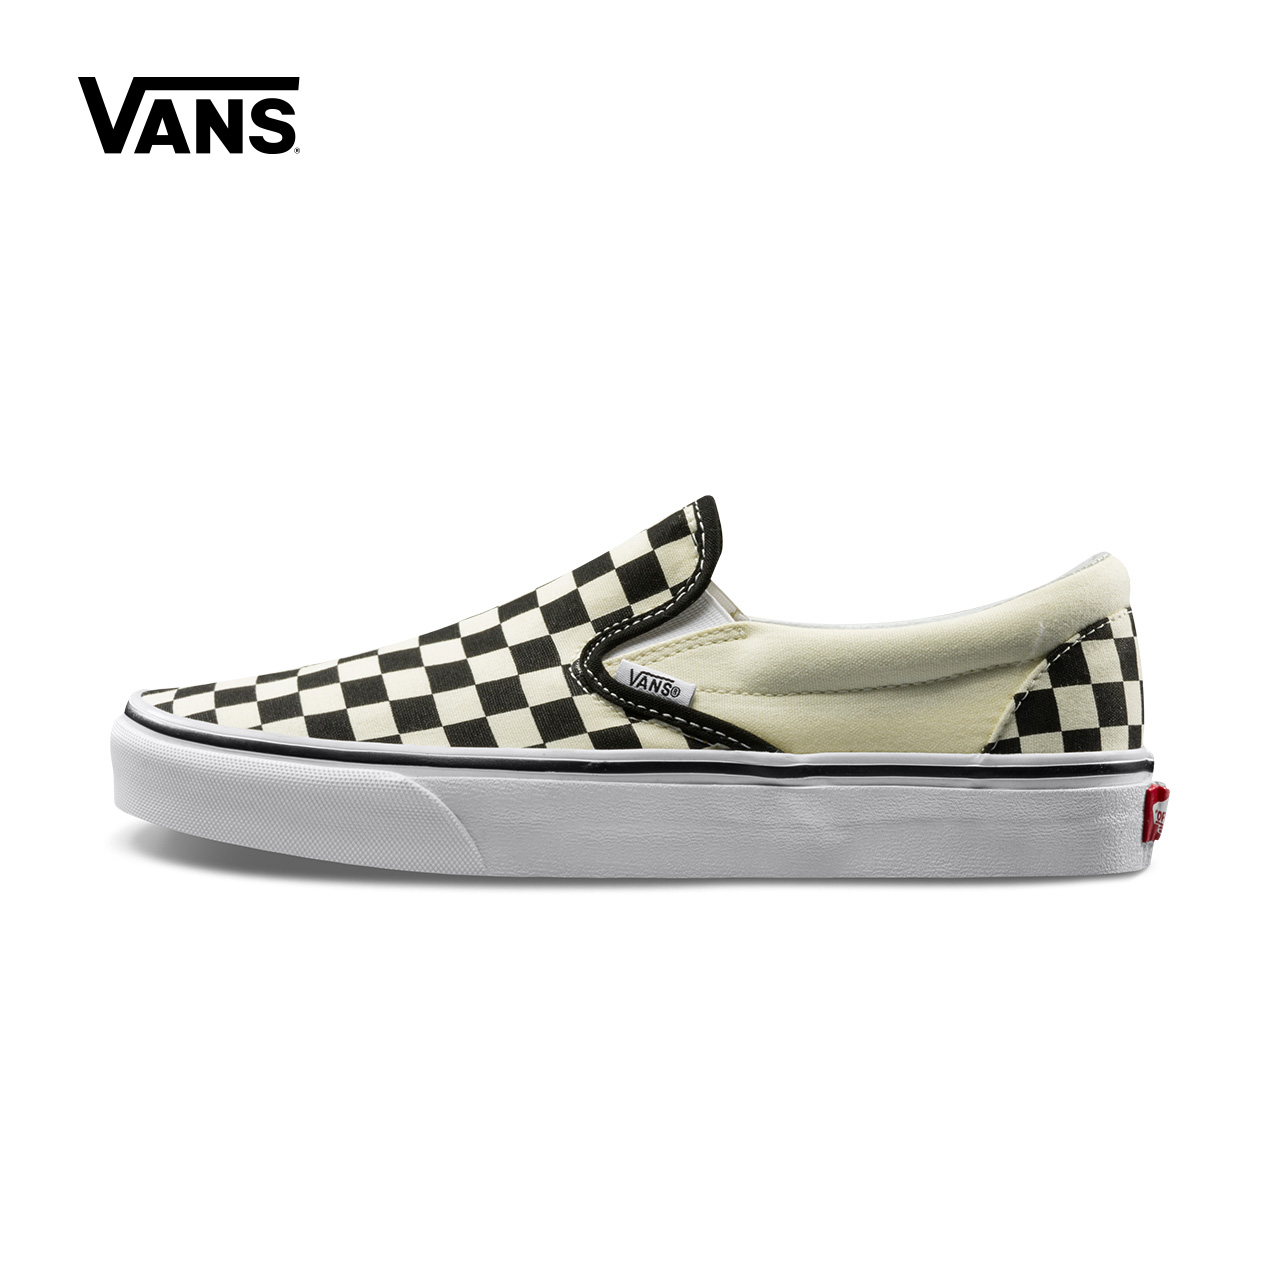 Original New Arrival Vans Men's & Women's Classic Slip-On Low-top Skateboarding Shoes Sneakers Canvas Comfortable VN-0EYEBWW